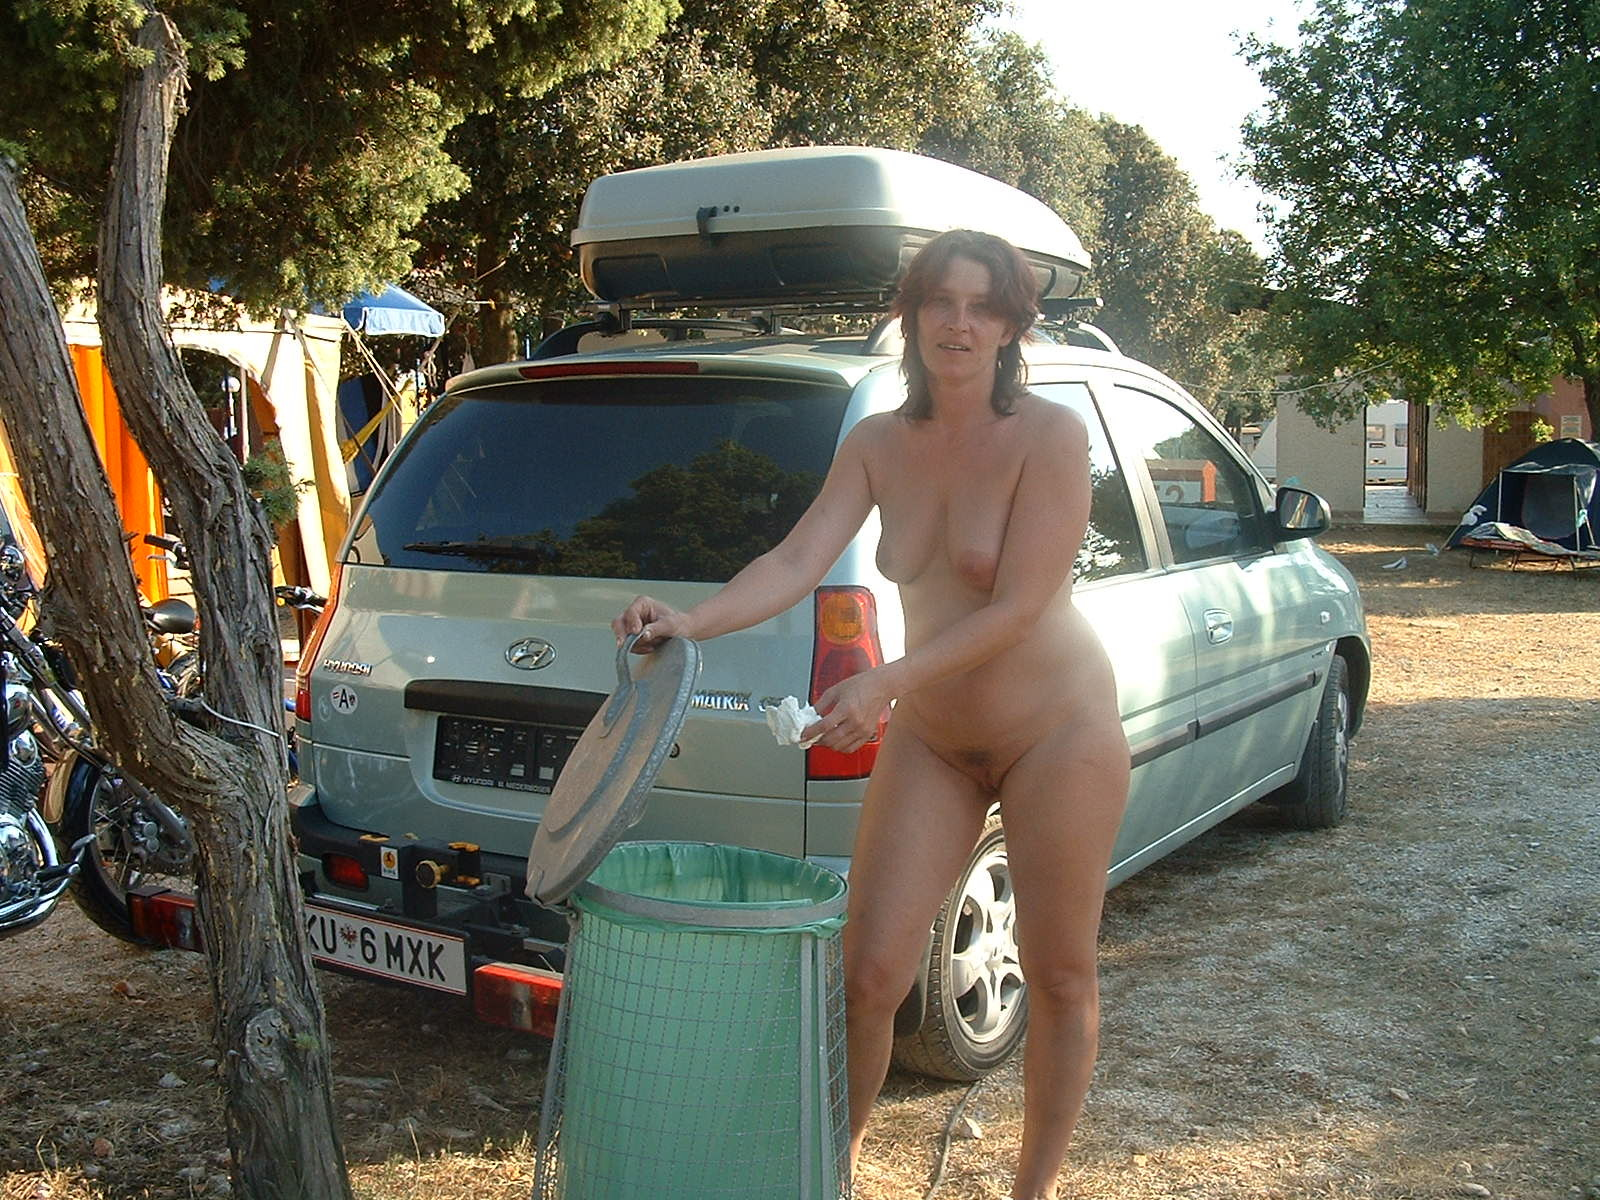 Rather good Amateur mature nude camping are not